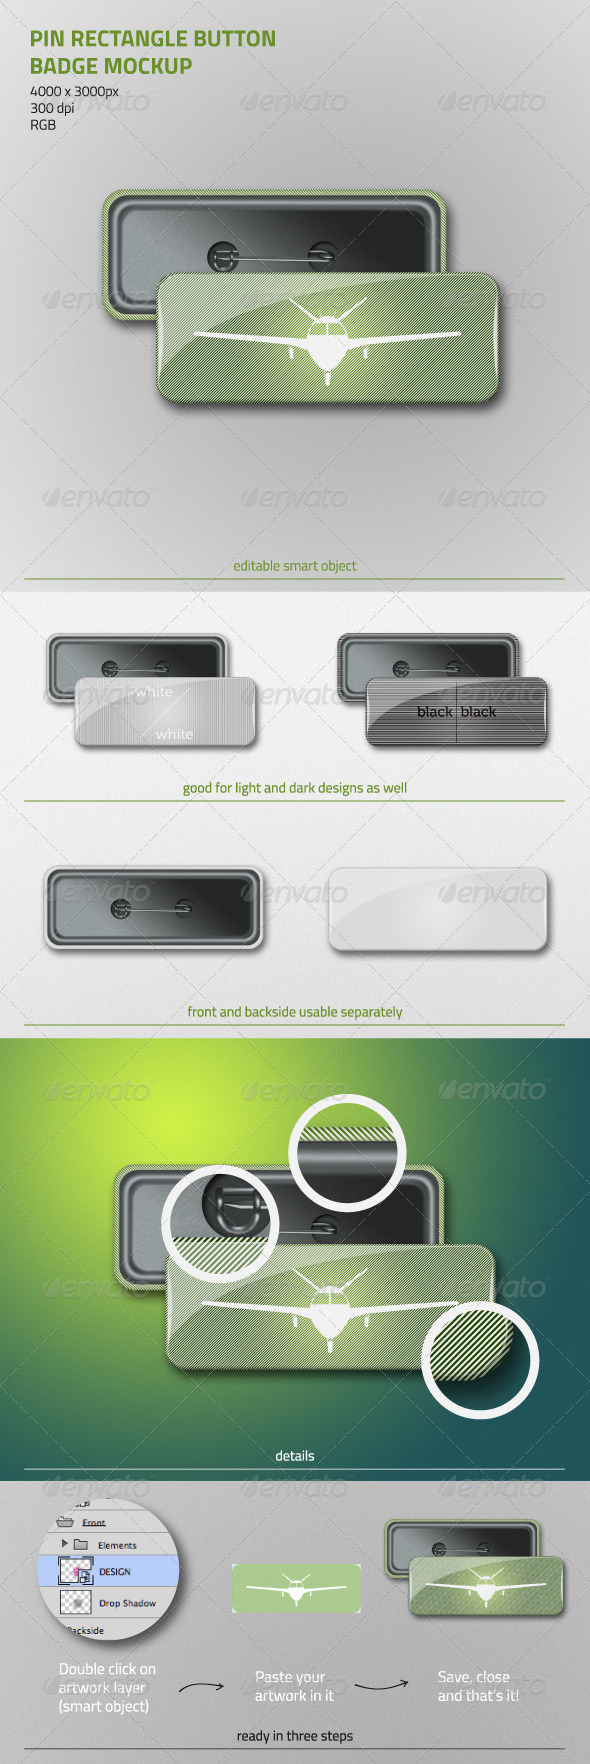 Pin Mockup Graphics, Designs & Templates from GraphicRiver